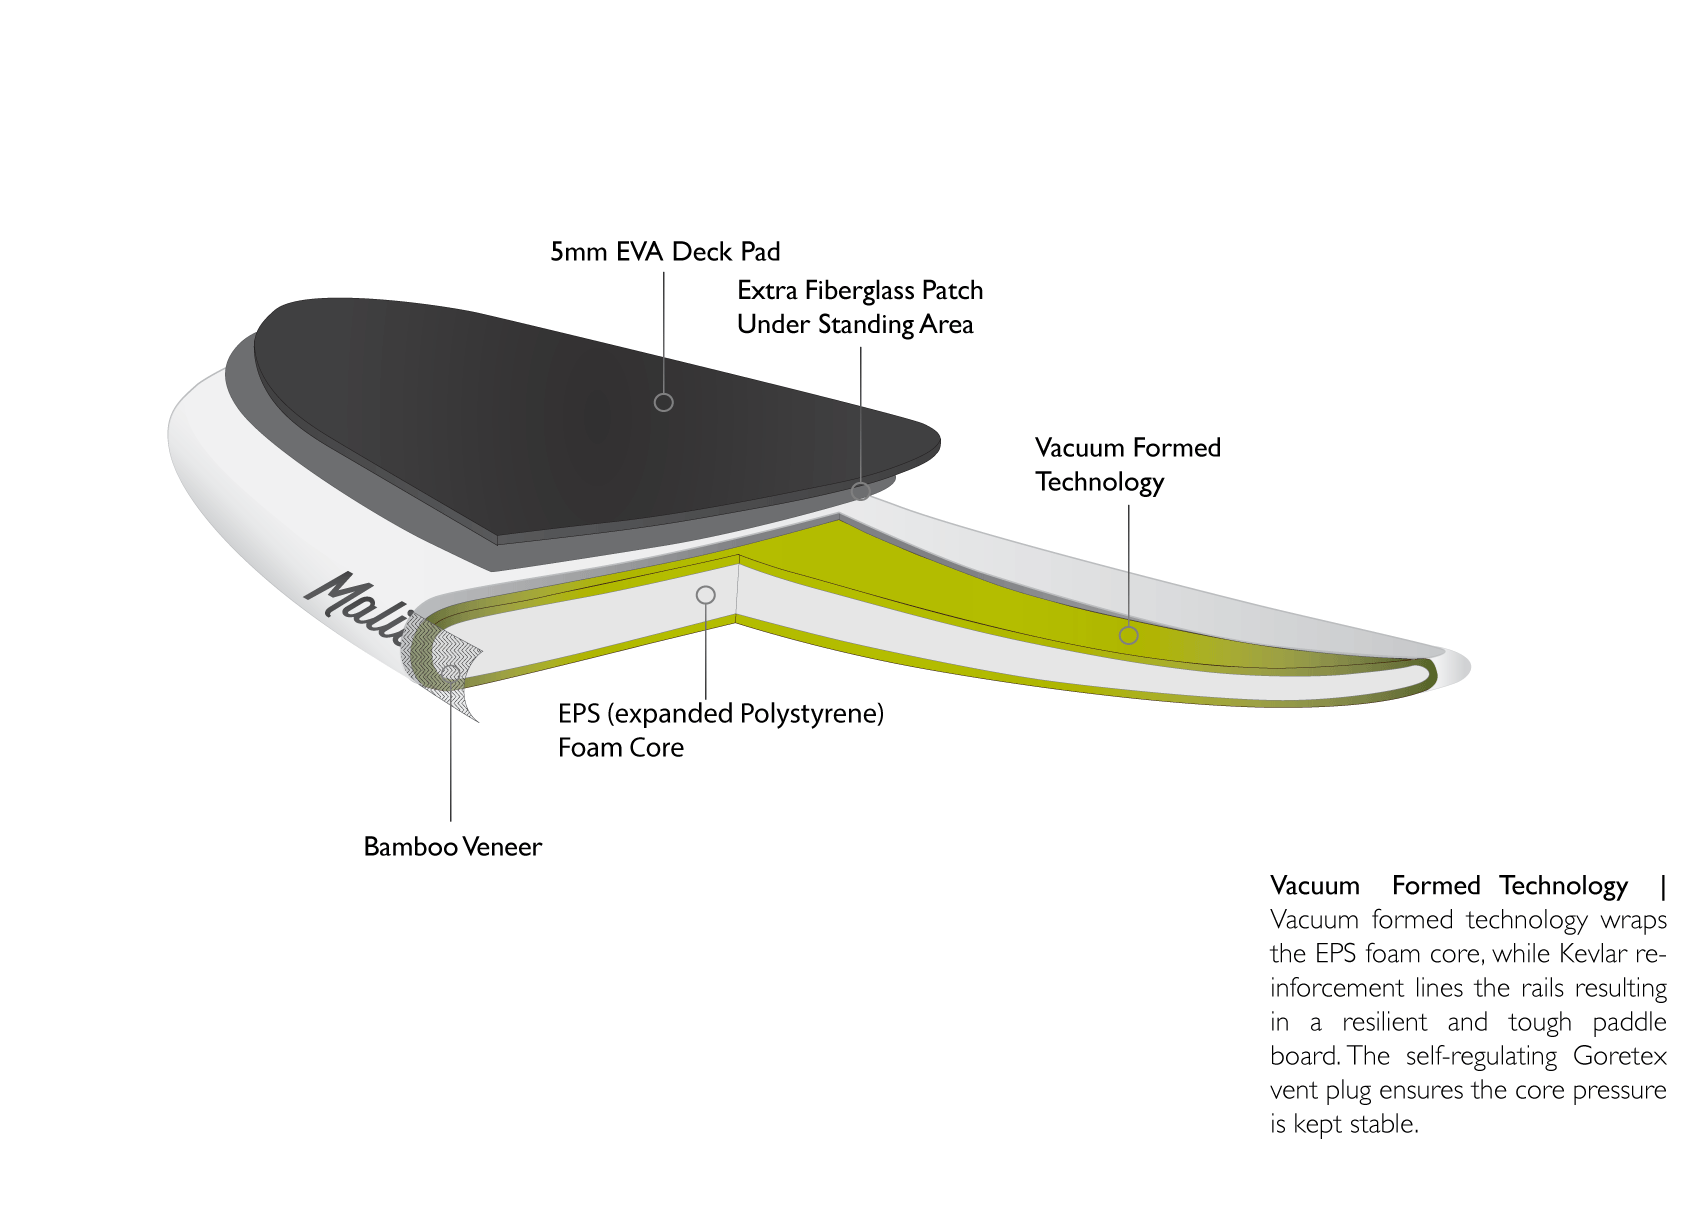 This board features Vacuum formed technology which wraps around the EPS core while kevlar reinforcement lines the rails resulting in a resilient and tough paddle board. The Self Regulating Goretex vent plug endures the core pressure is kept stable